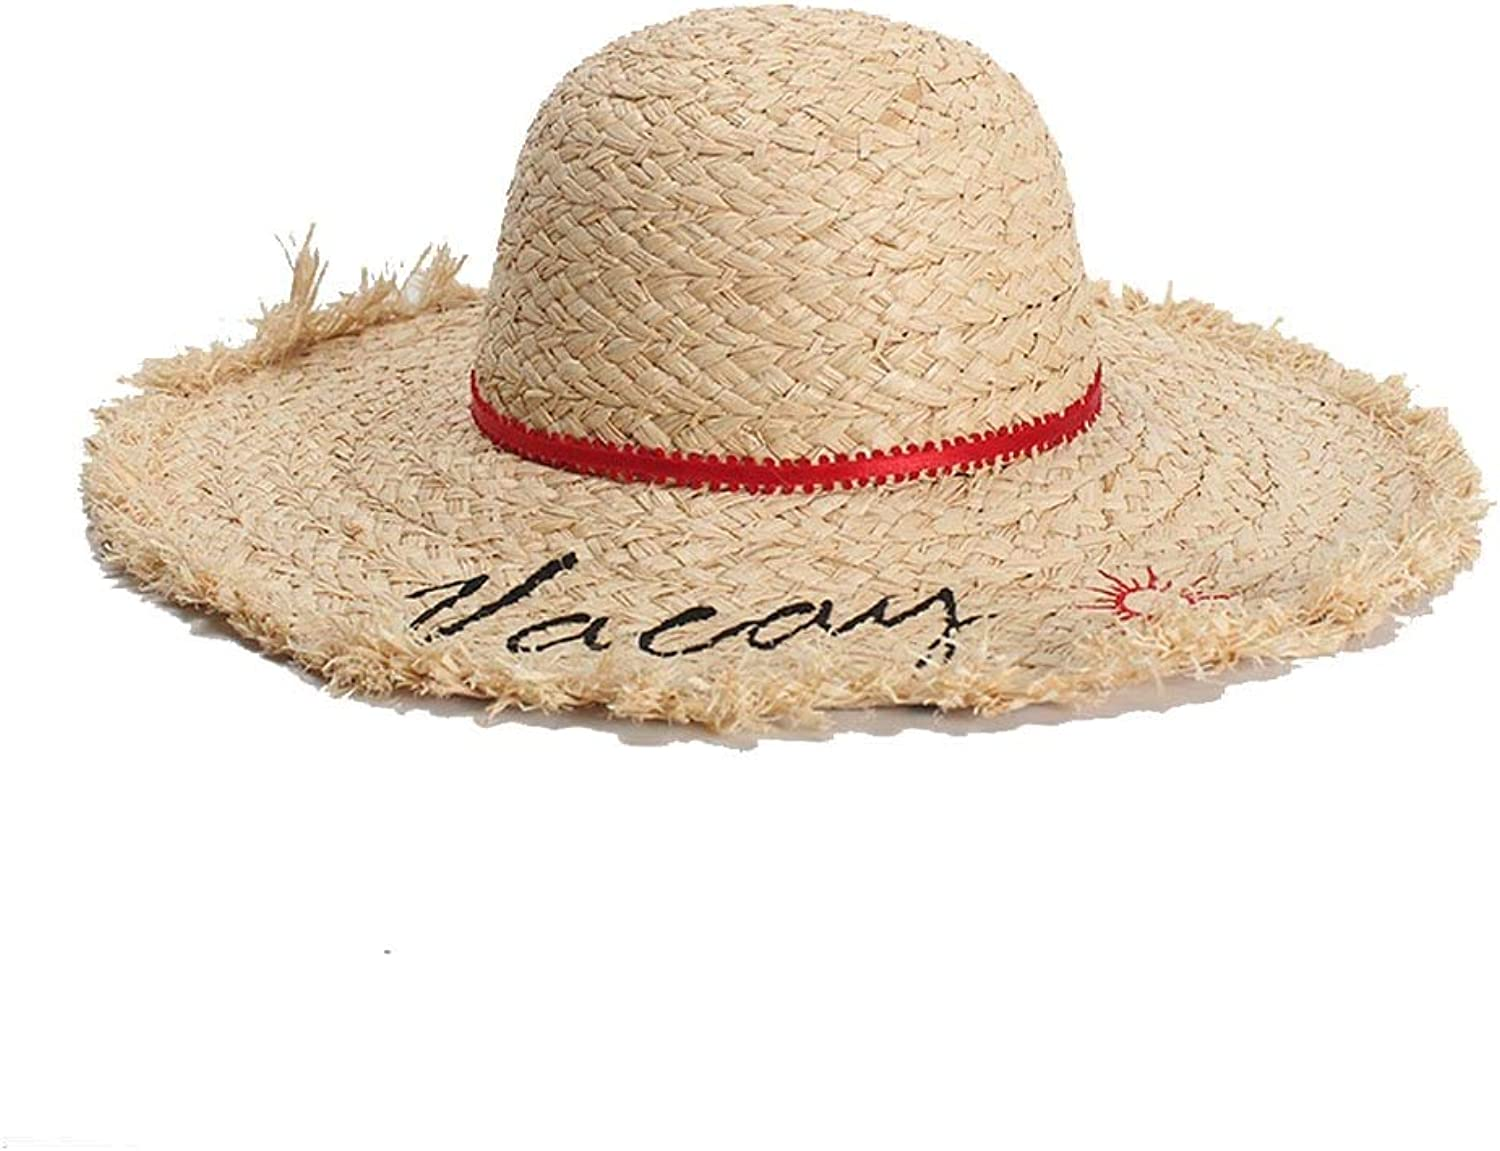 Fashion Sun Hat Lafite Lady Hat Summer Vacation Embroidery Dome Edging Big Visor Sunscreen Beach Hat Comfortable (color   Light Khaki, Size   5658CM)